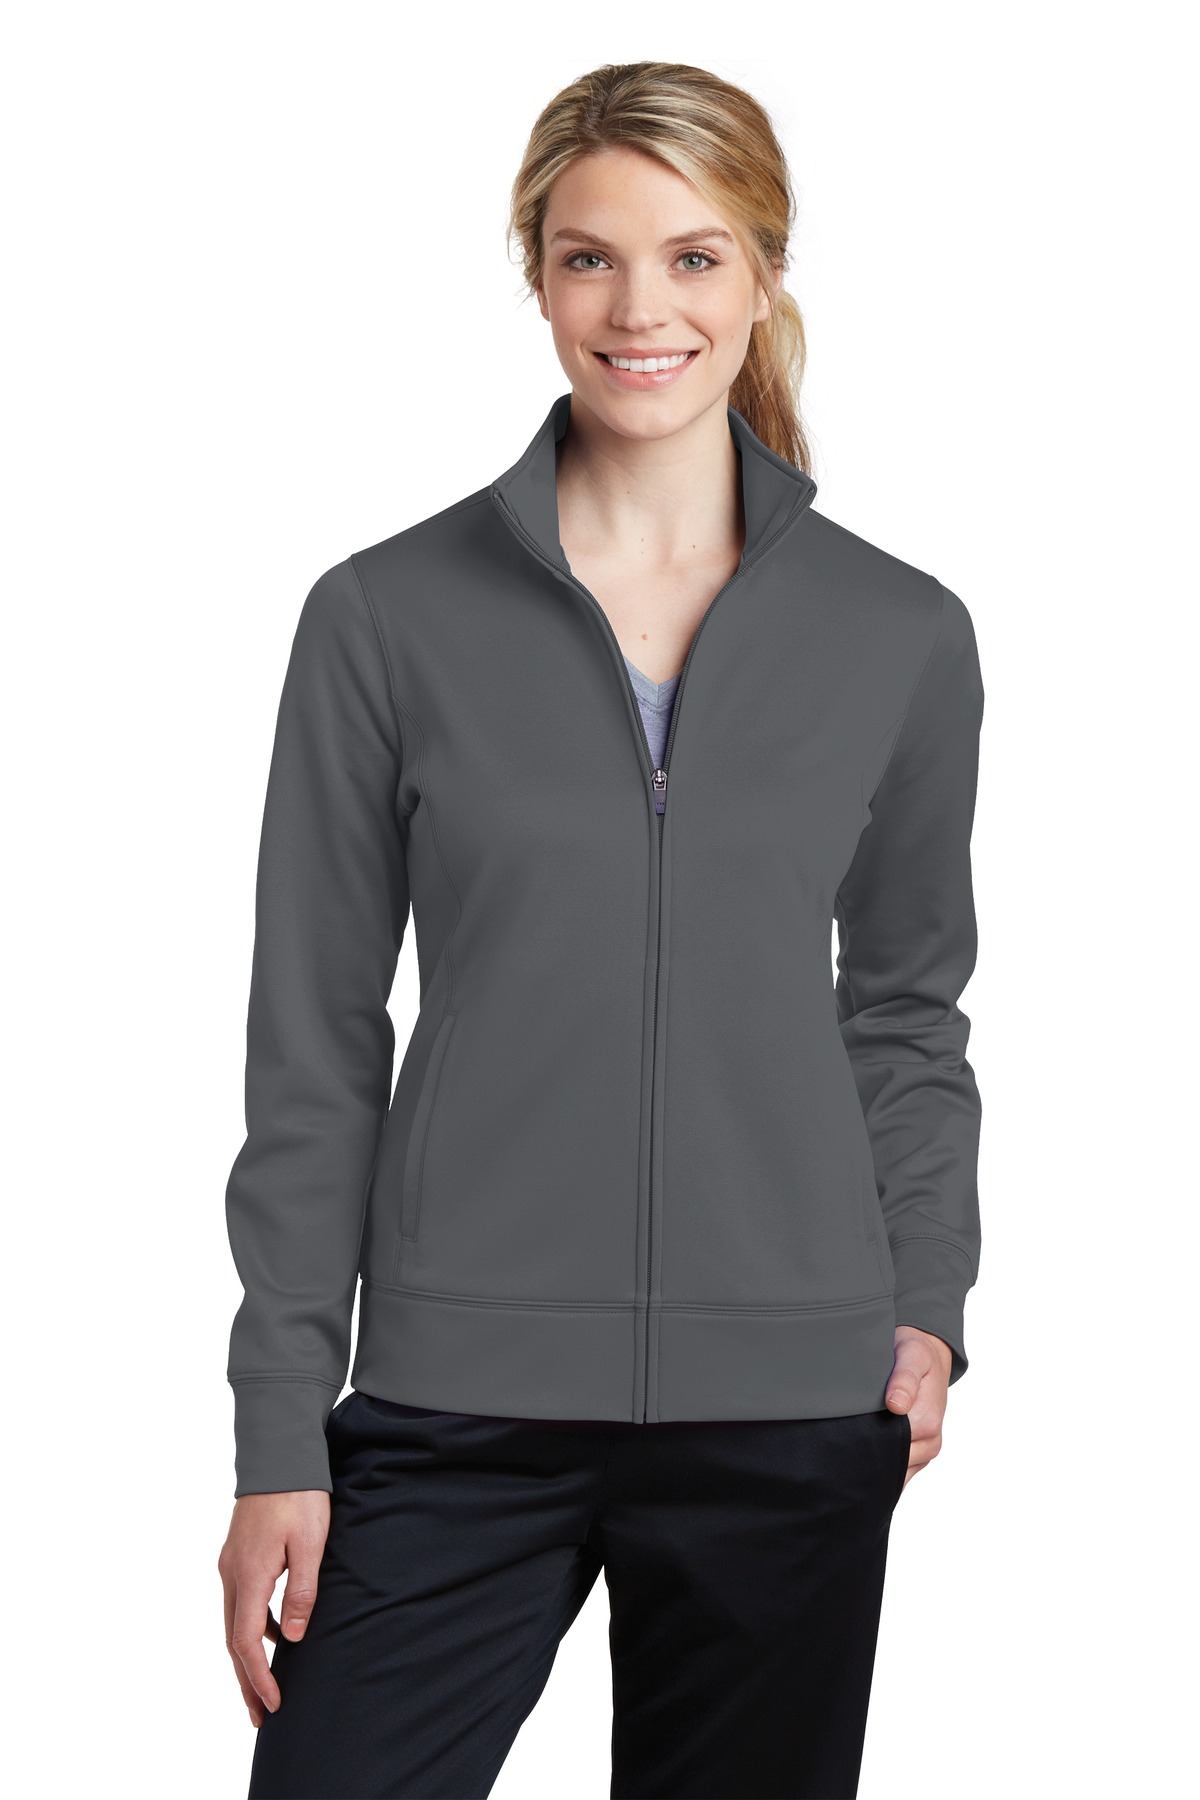 Sport-Tek ®  Ladies Sport-Wick ®  Fleece Full-Zip Jacket.  LST241 - Dark Smoke Grey